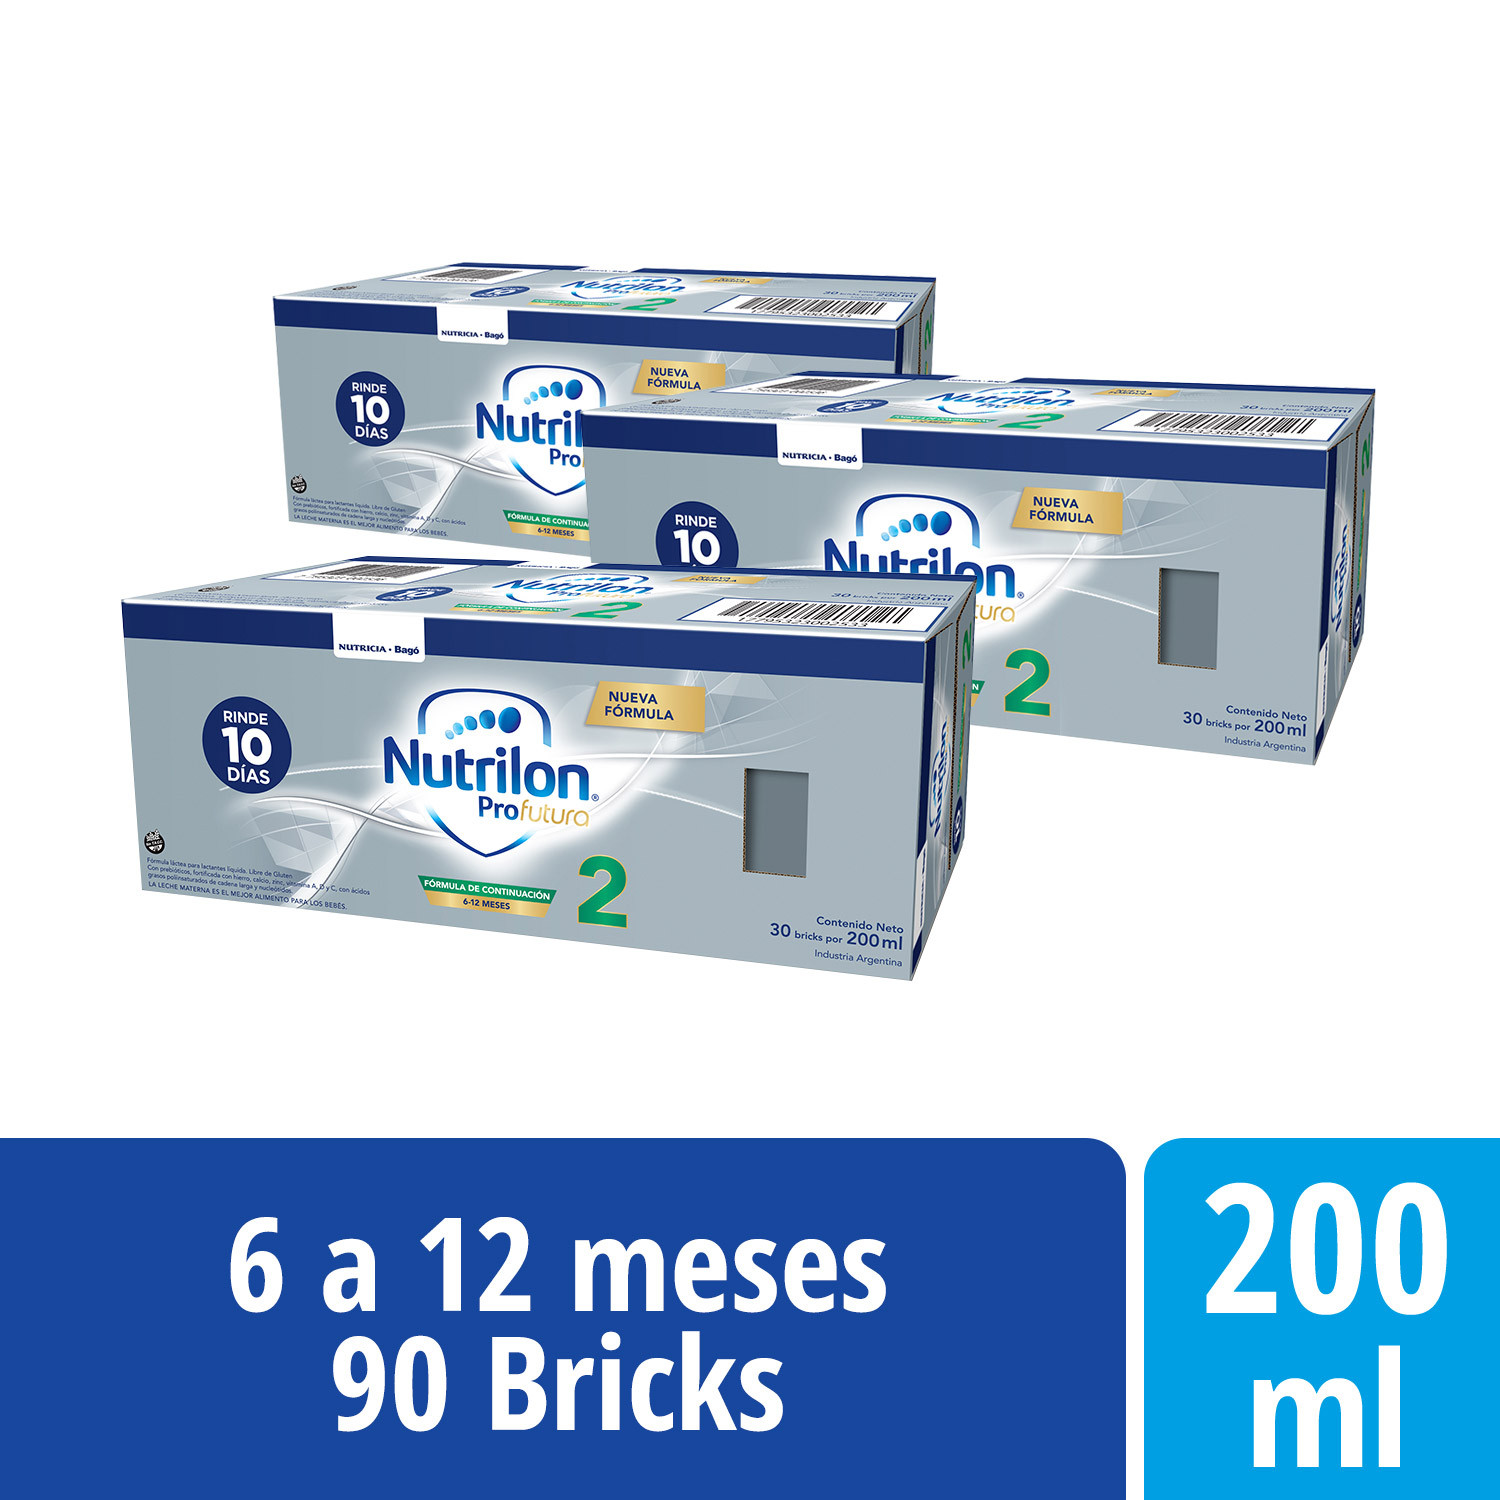 Pack Nutrilon Profutura 2 - Brick 200 ml